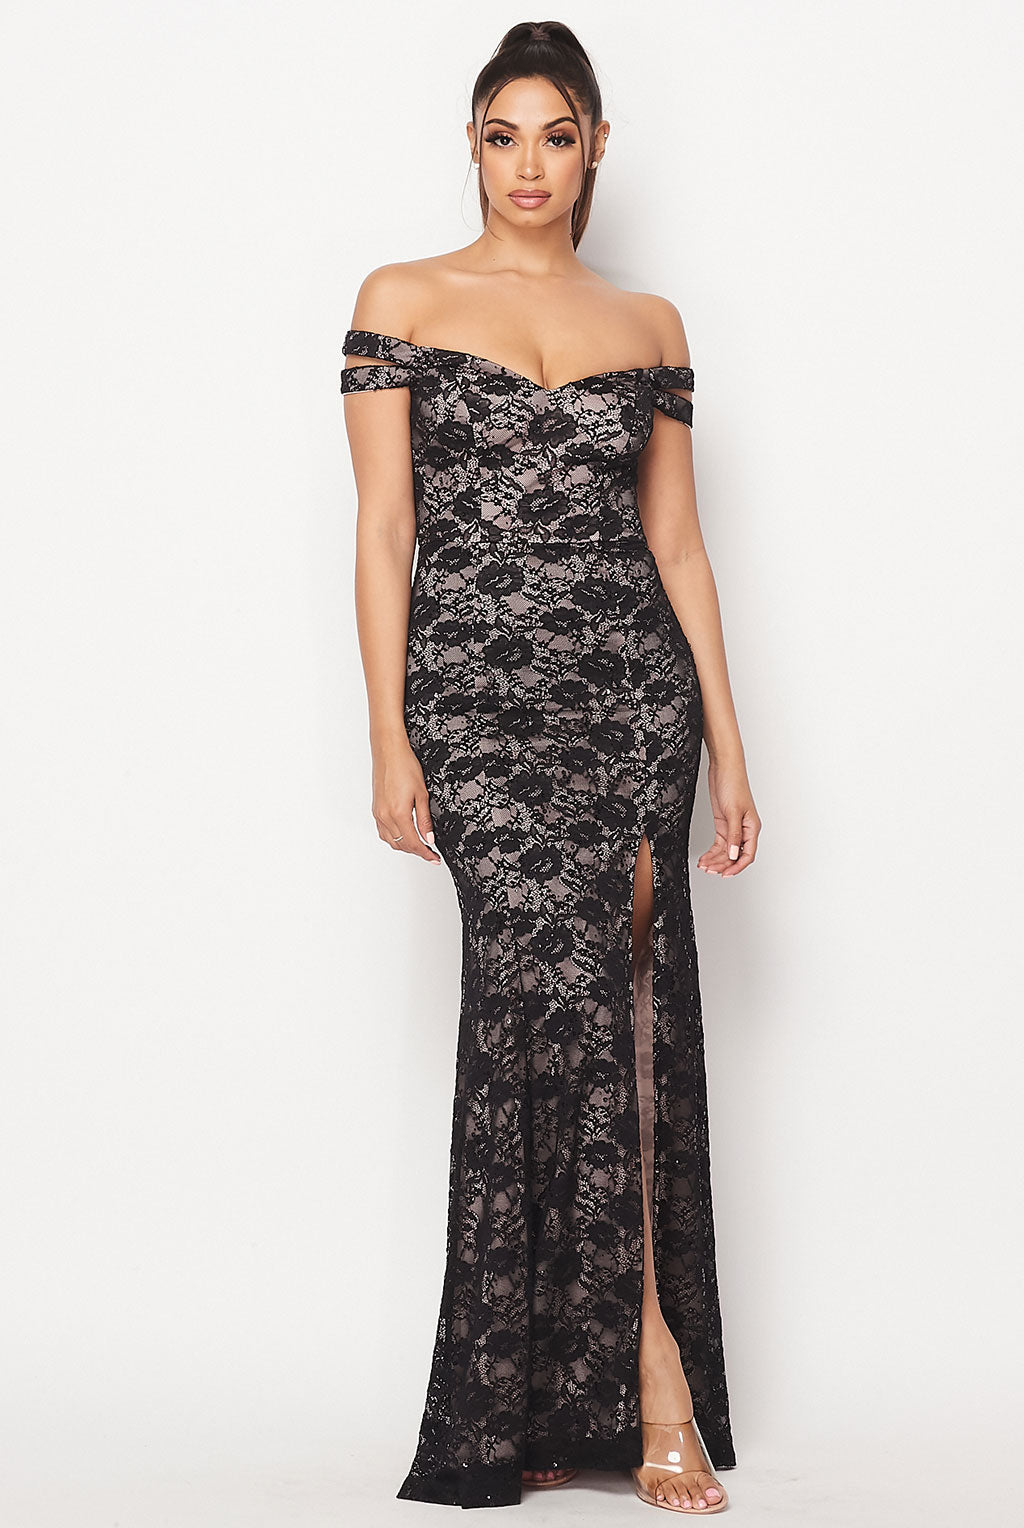 Teeze Me | Lace Off the Shoulder Lace Long Dress | Black/Nude